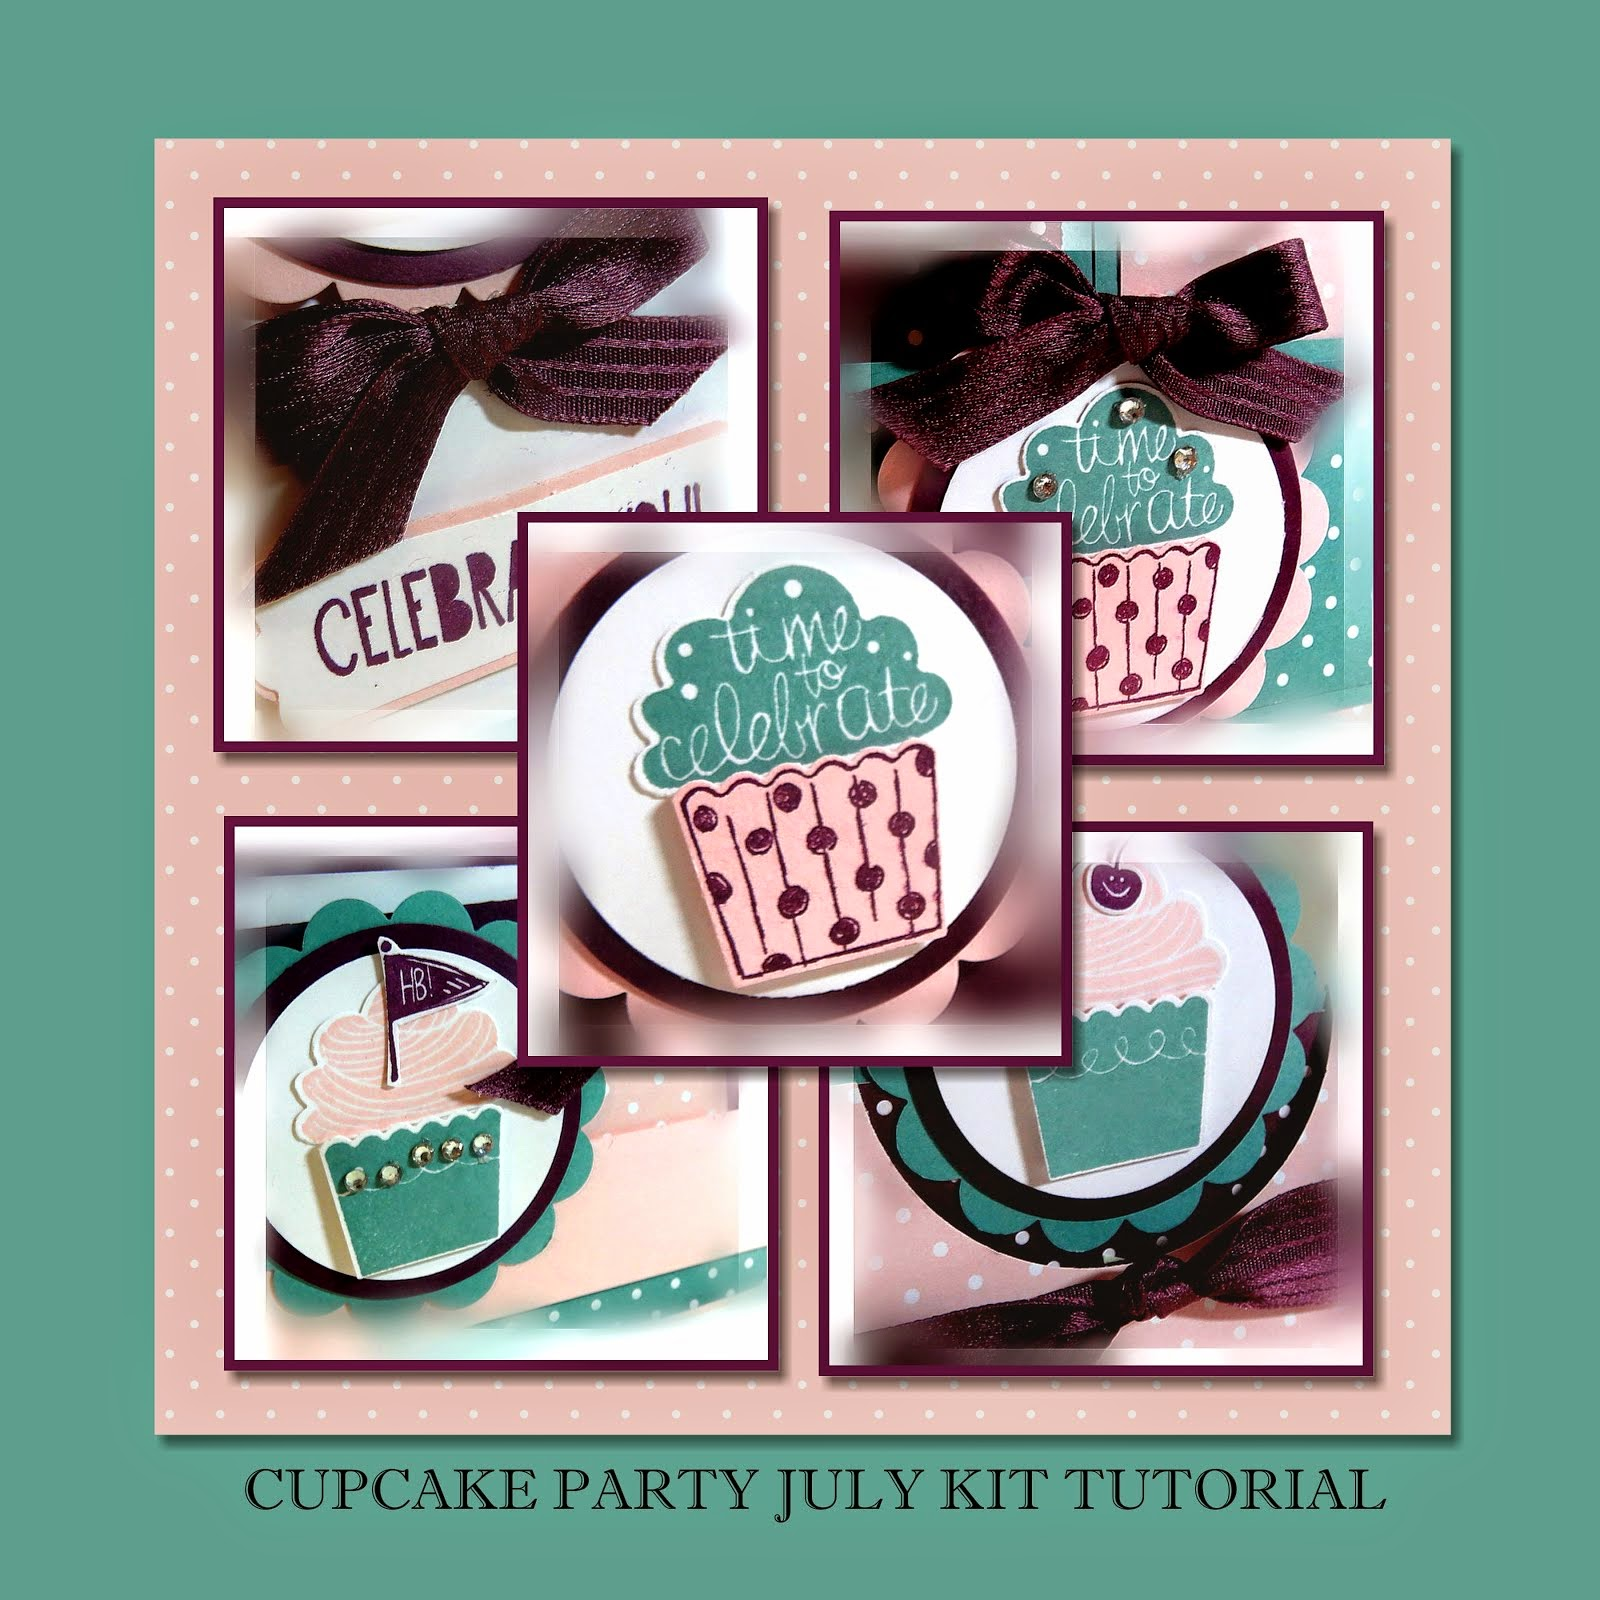 Cupcake Party July 2014 Tutorial